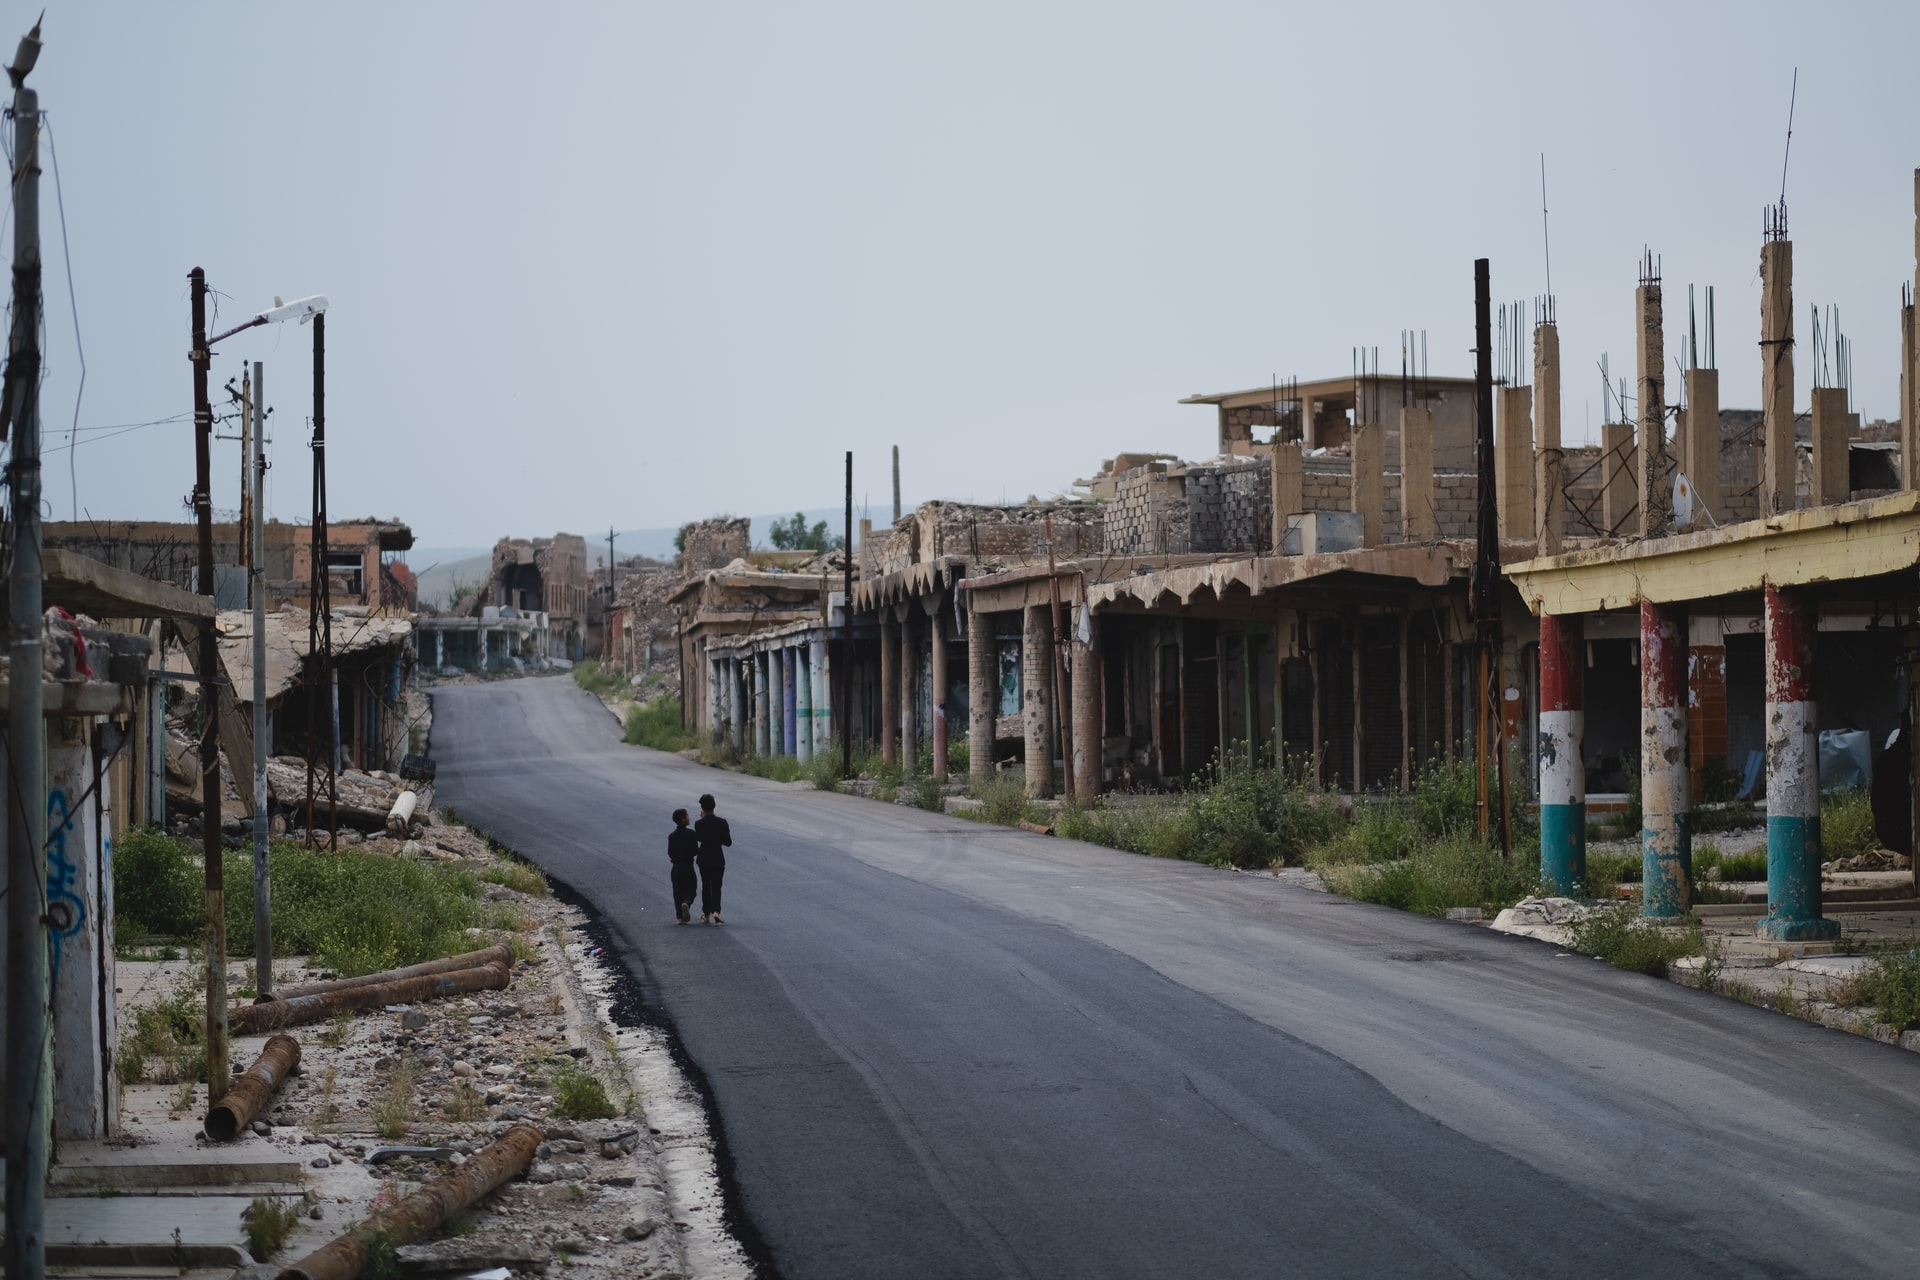 Believers in Iraq face new challenges with fewer options